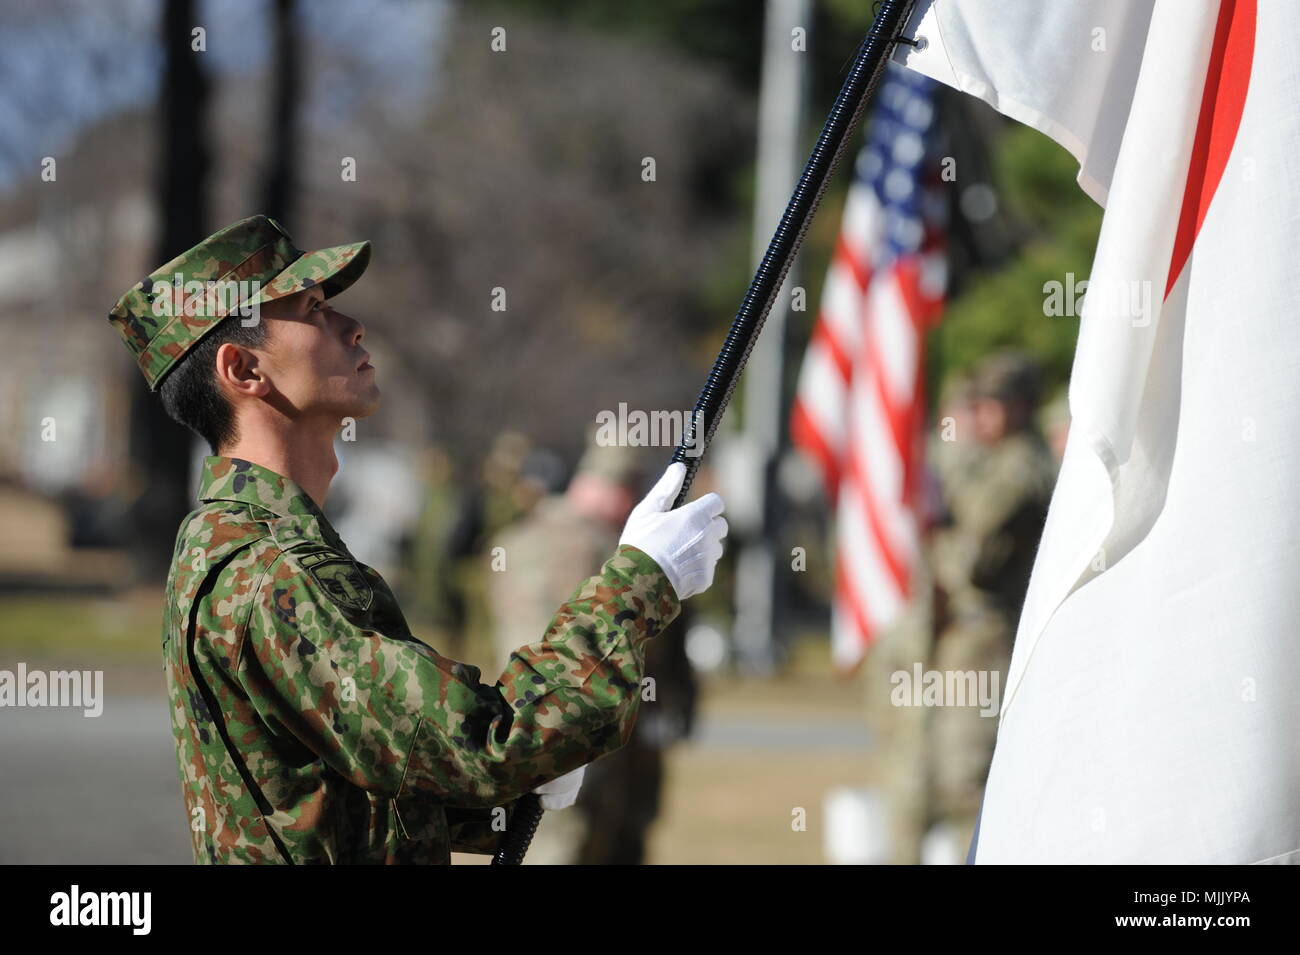 Bearer Stock Photos Images Page 23 Alamy Sakura Moth Hanger 160 Gr Camp Sendai Japan A Ground Self Defense Force Jgsdf Flag